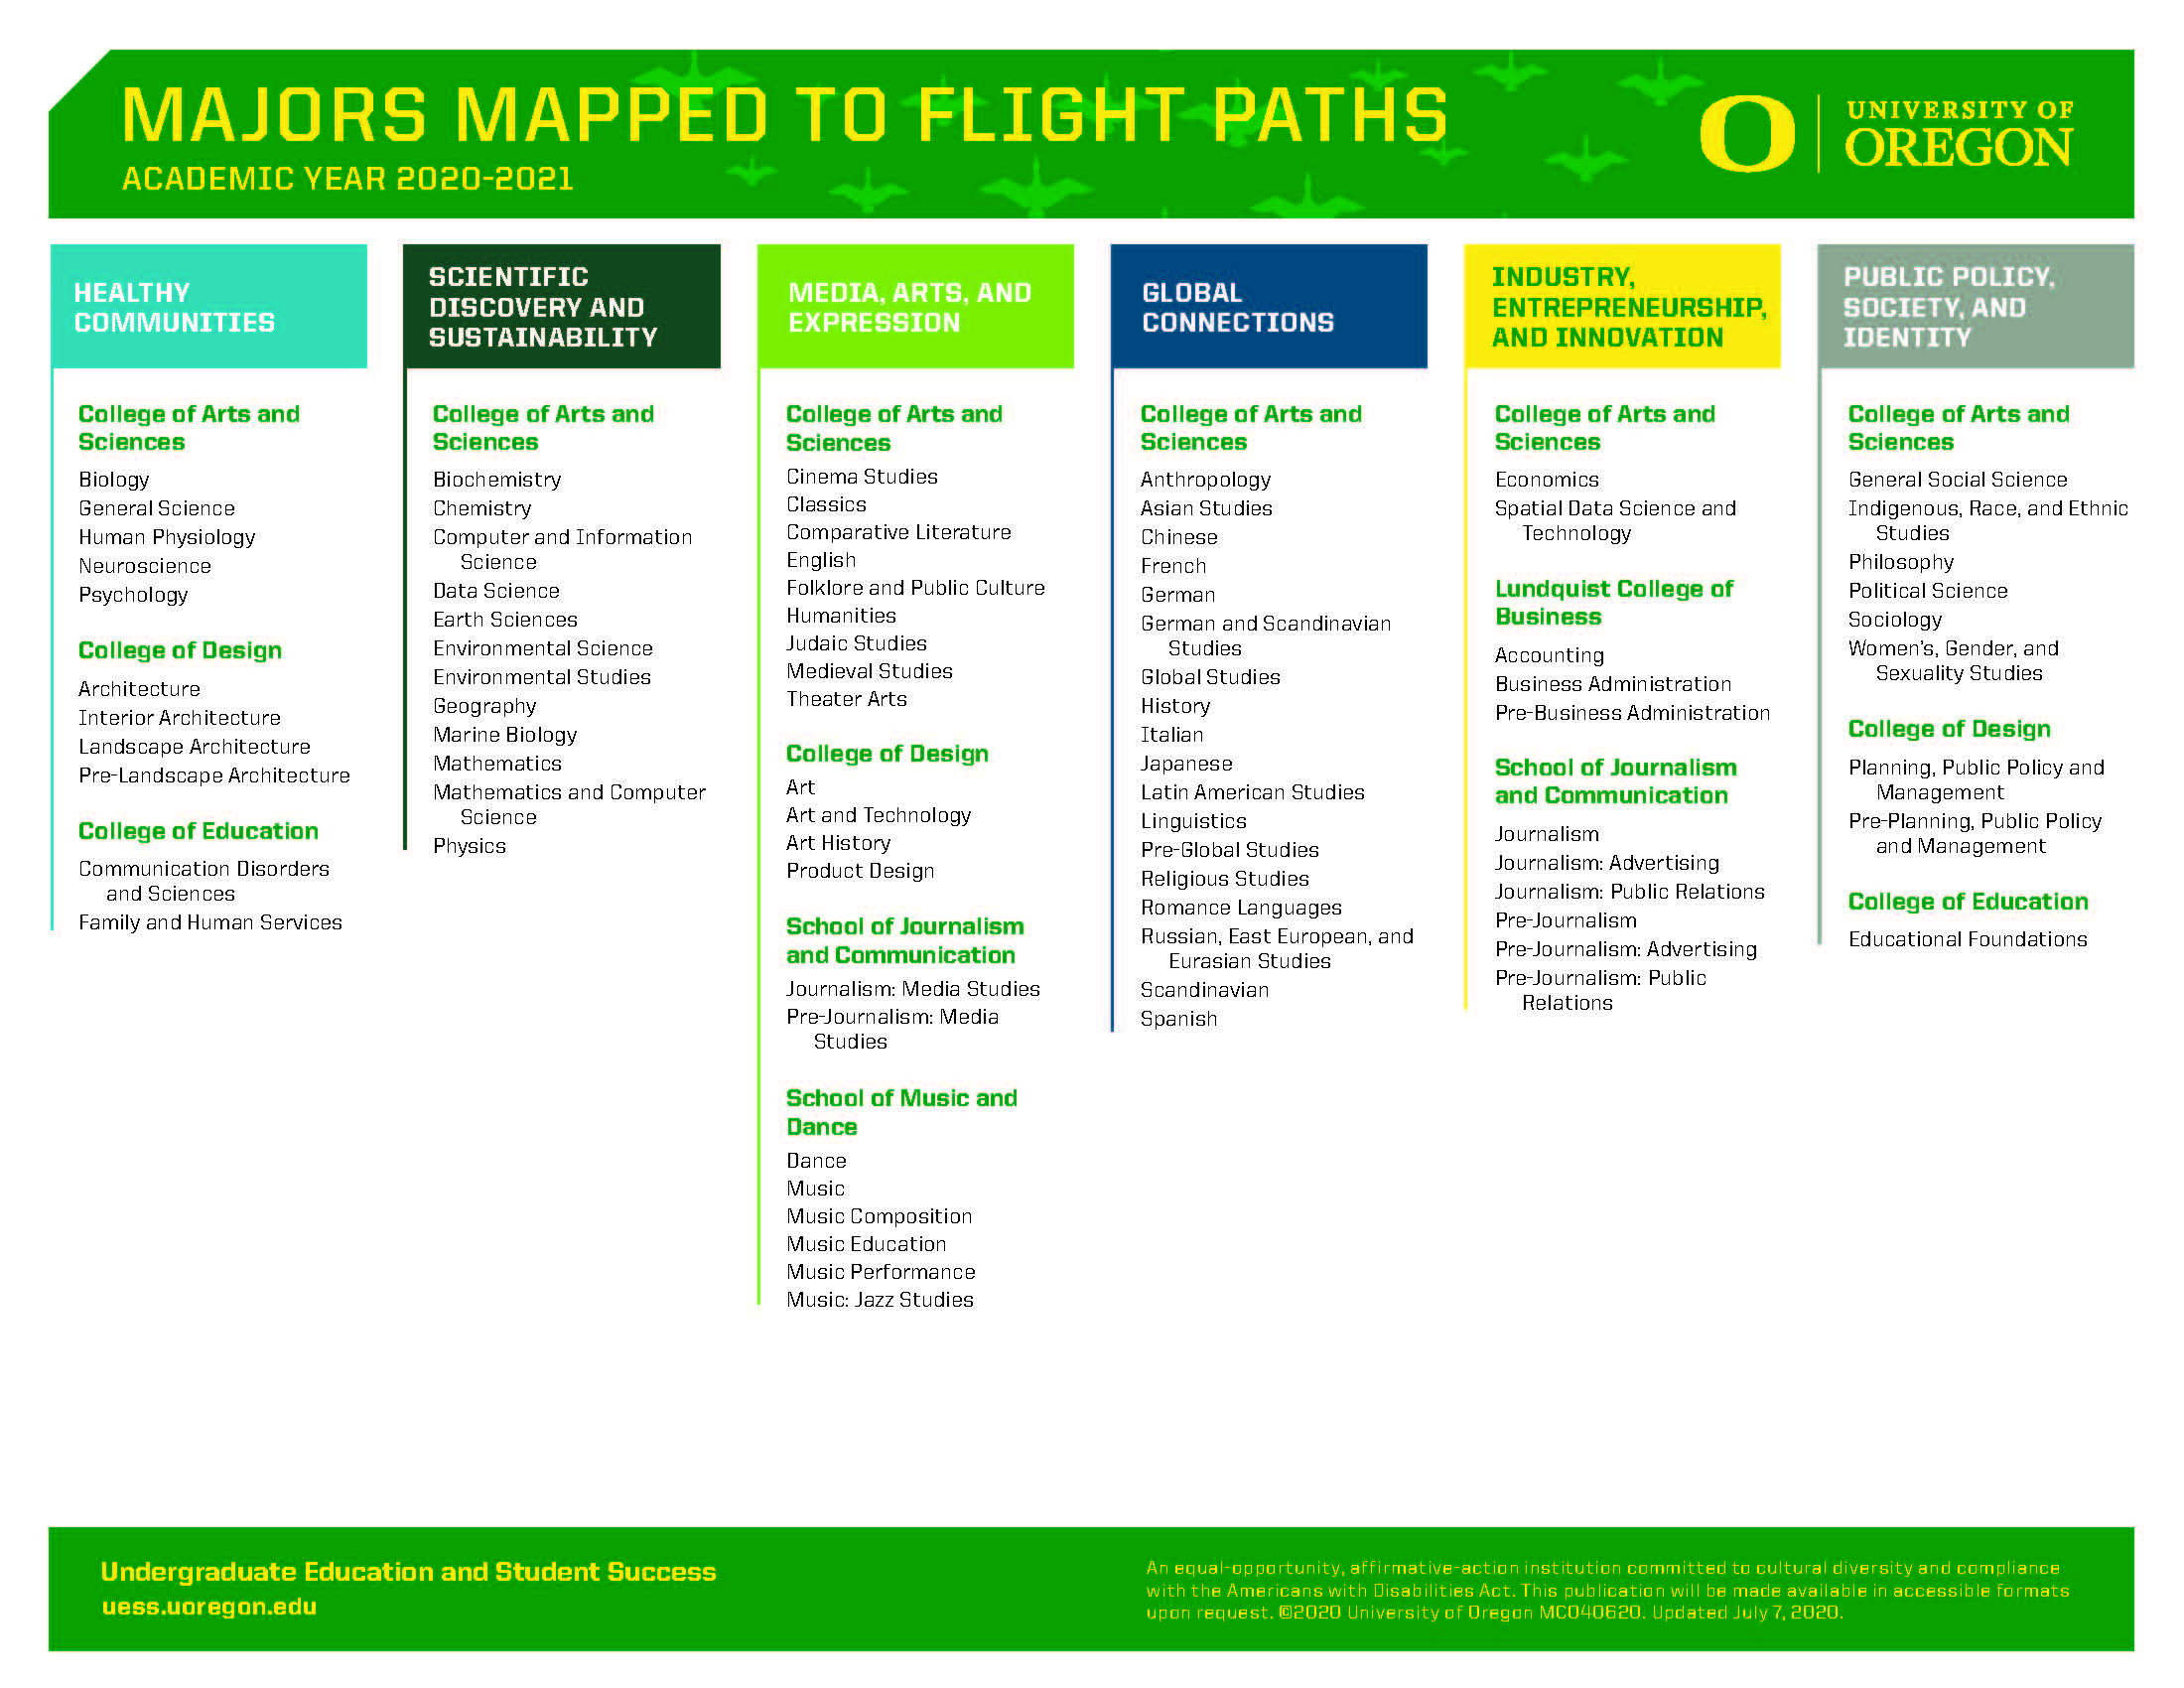 2020-21 Majors Mapped to Flight Paths.jpg